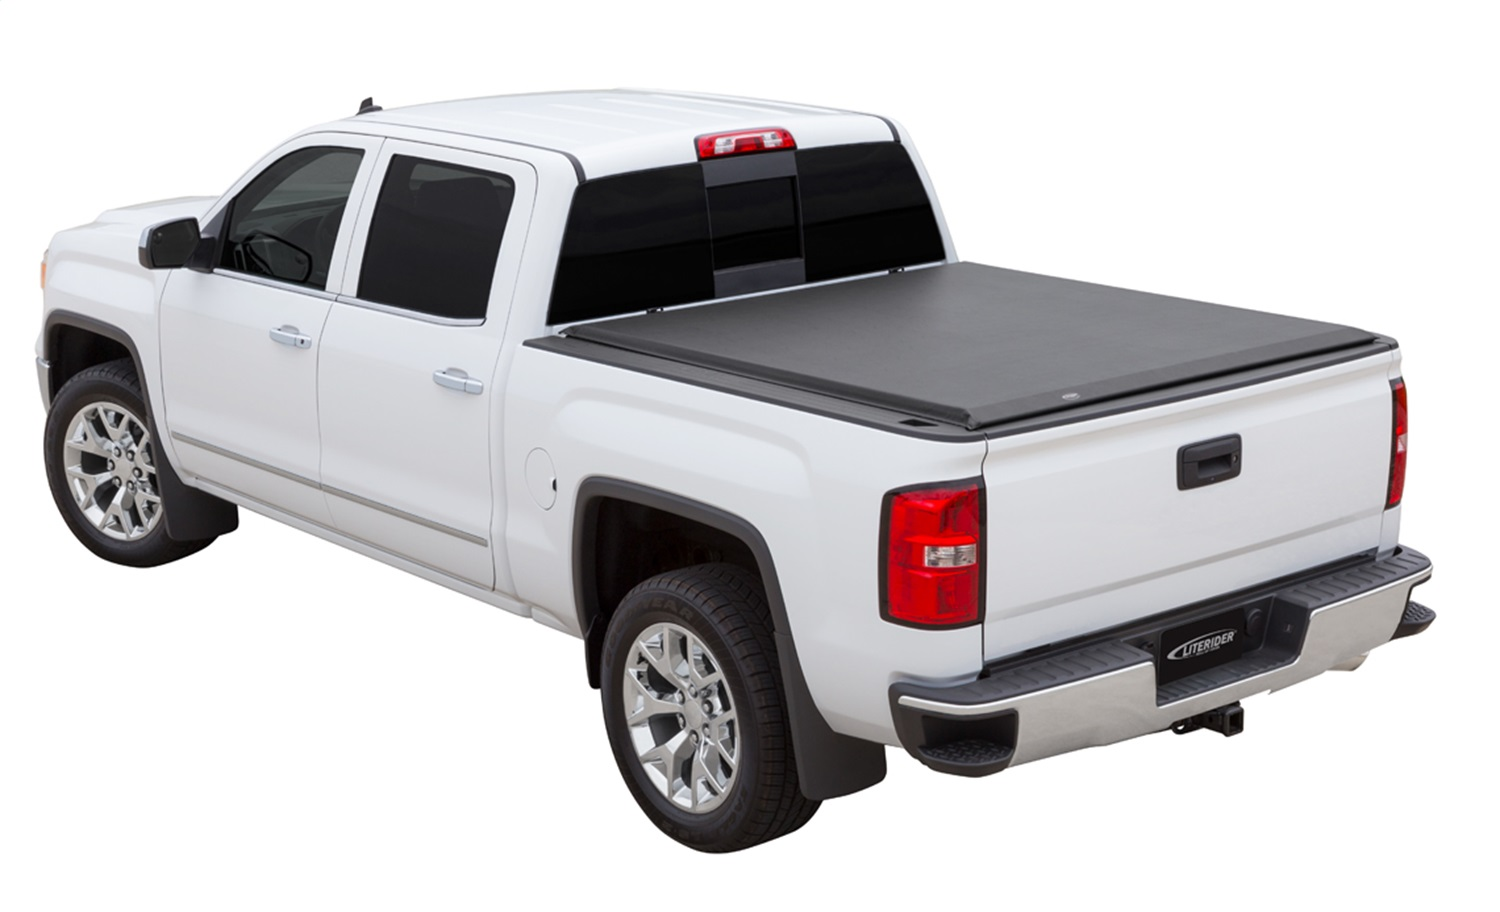 Access Cover 32319 LITERIDER Roll-Up Cover Fits Sierra 1500 Silverado 1500